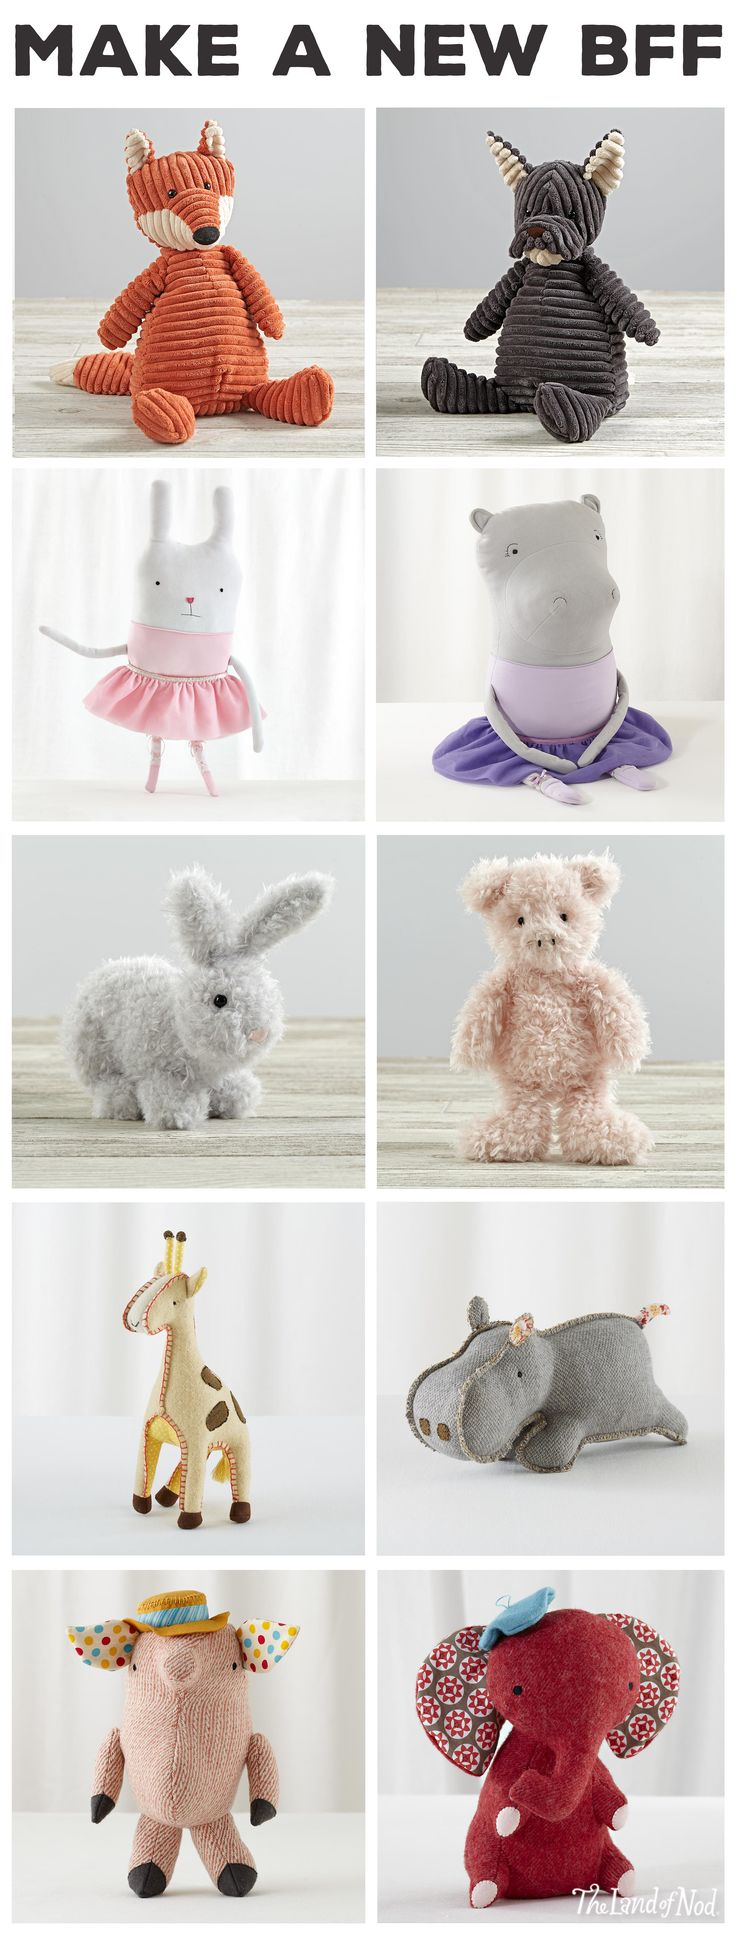 If your little ones are looking for the perfect sidekick, you're in luck. We've got tons of stuffed animals and dolls to keep